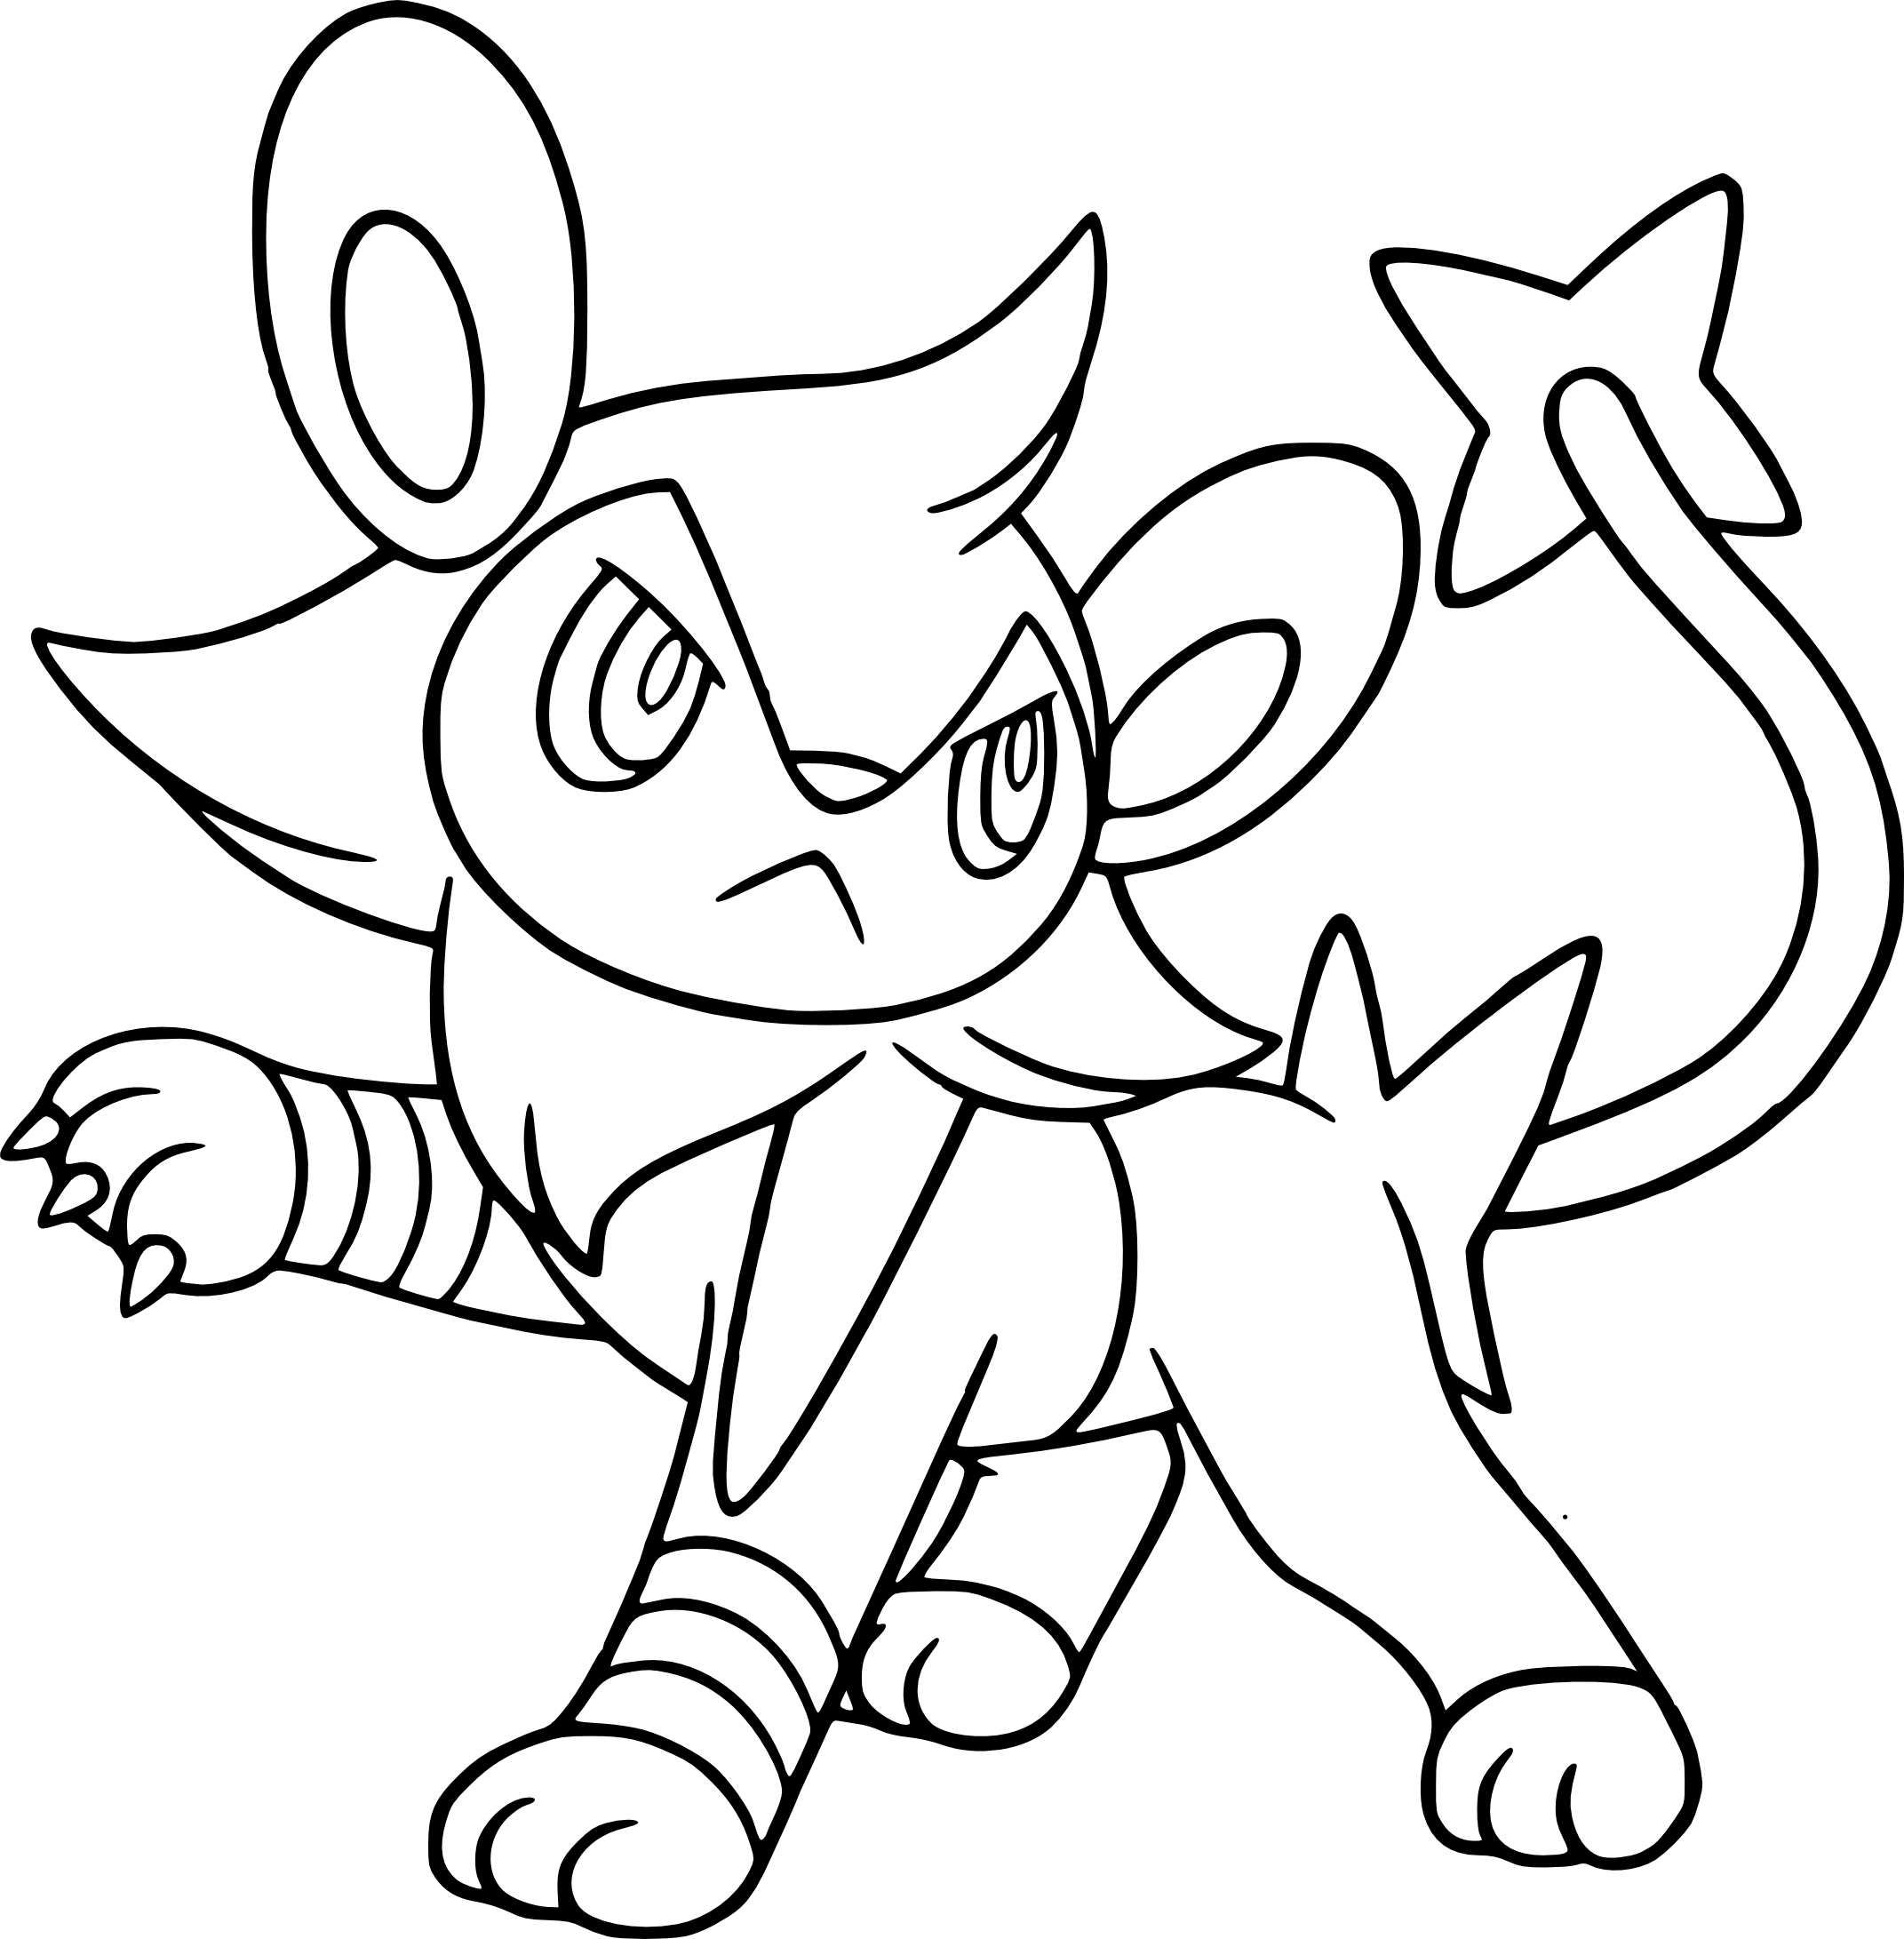 Pokemon coloring pages arcanine - Pokemon Coloring Pages Arcanine Image